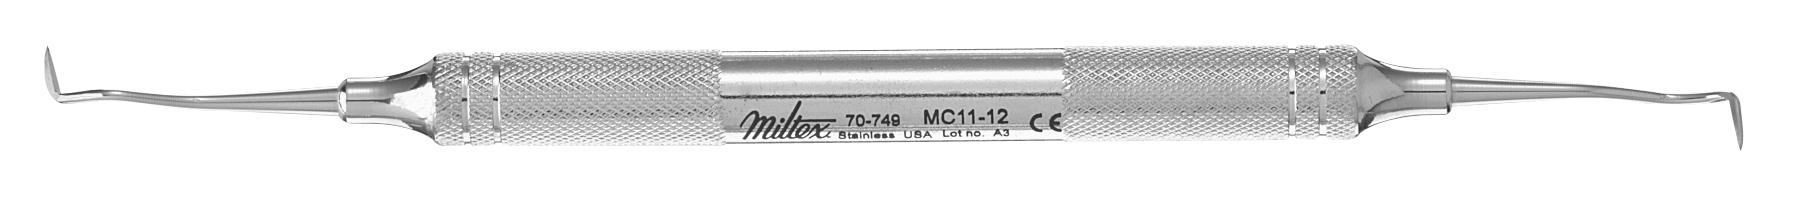 mccall-11-12-curette-6-handle-70-749-miltex.jpg